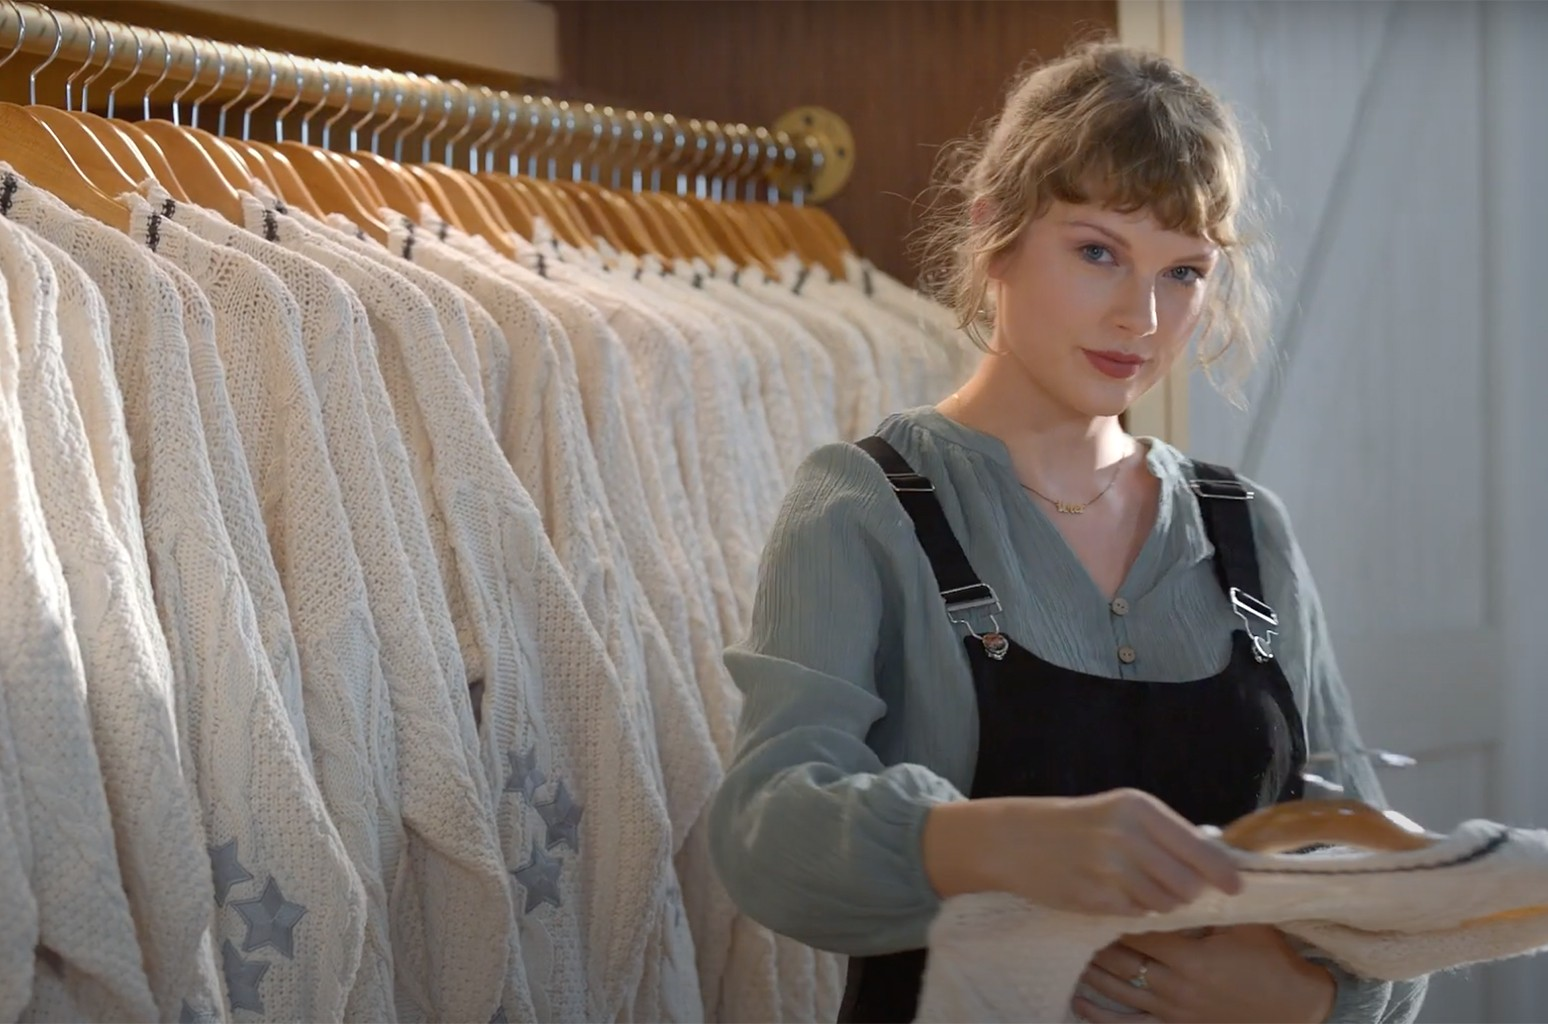 Taylor Swift Shows Off Closet Full Of Folklore Cardigans In New Capital One Ad Billboard